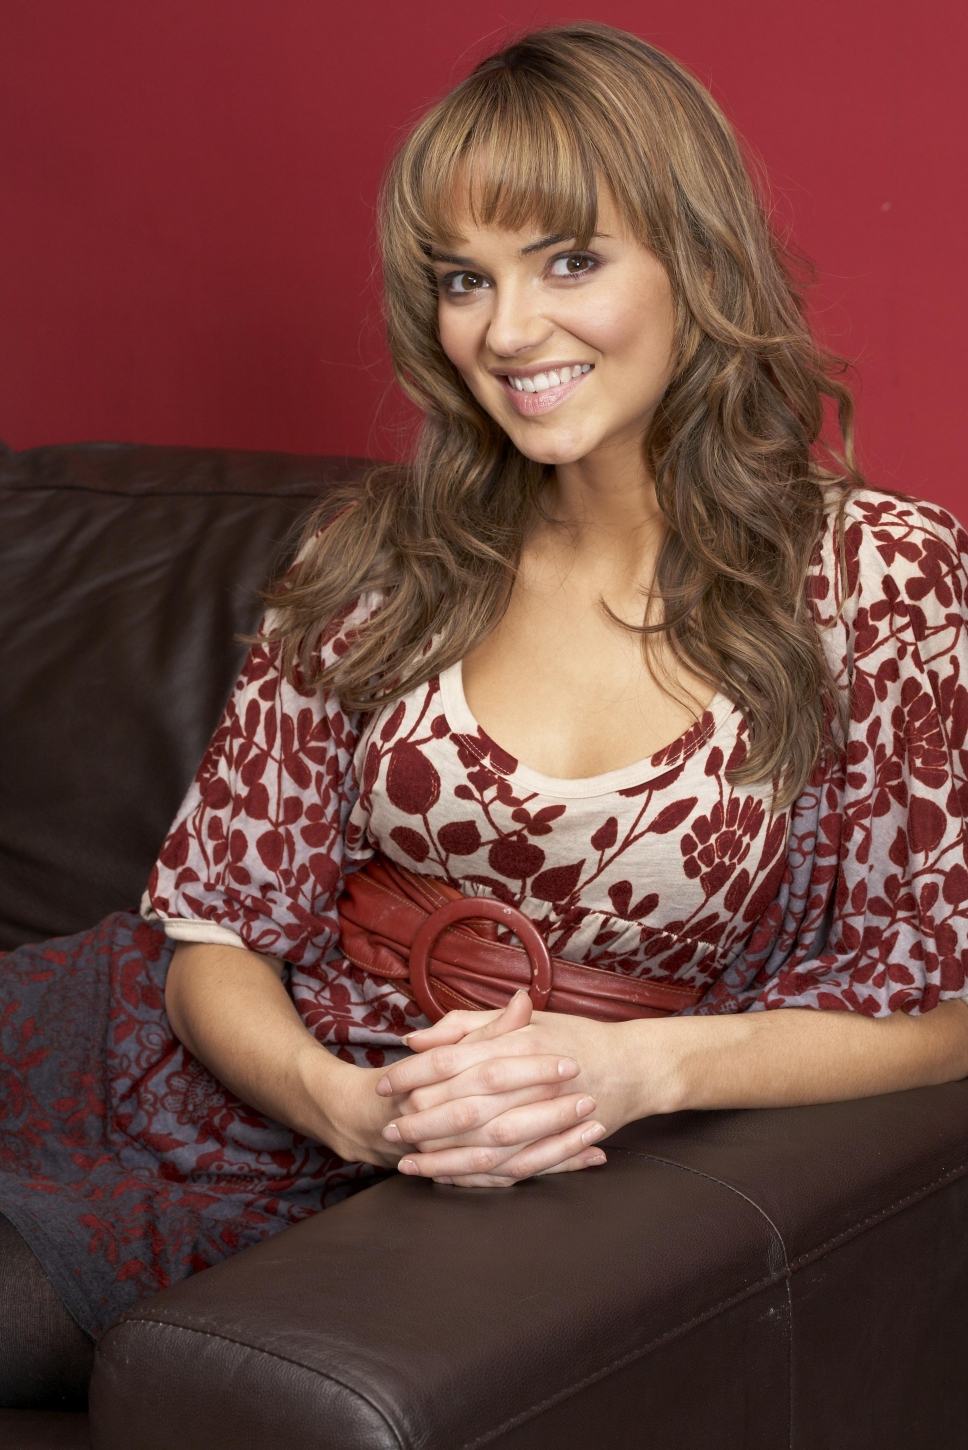 kara-tointon-naked-pictures-women-kissing-women-naked